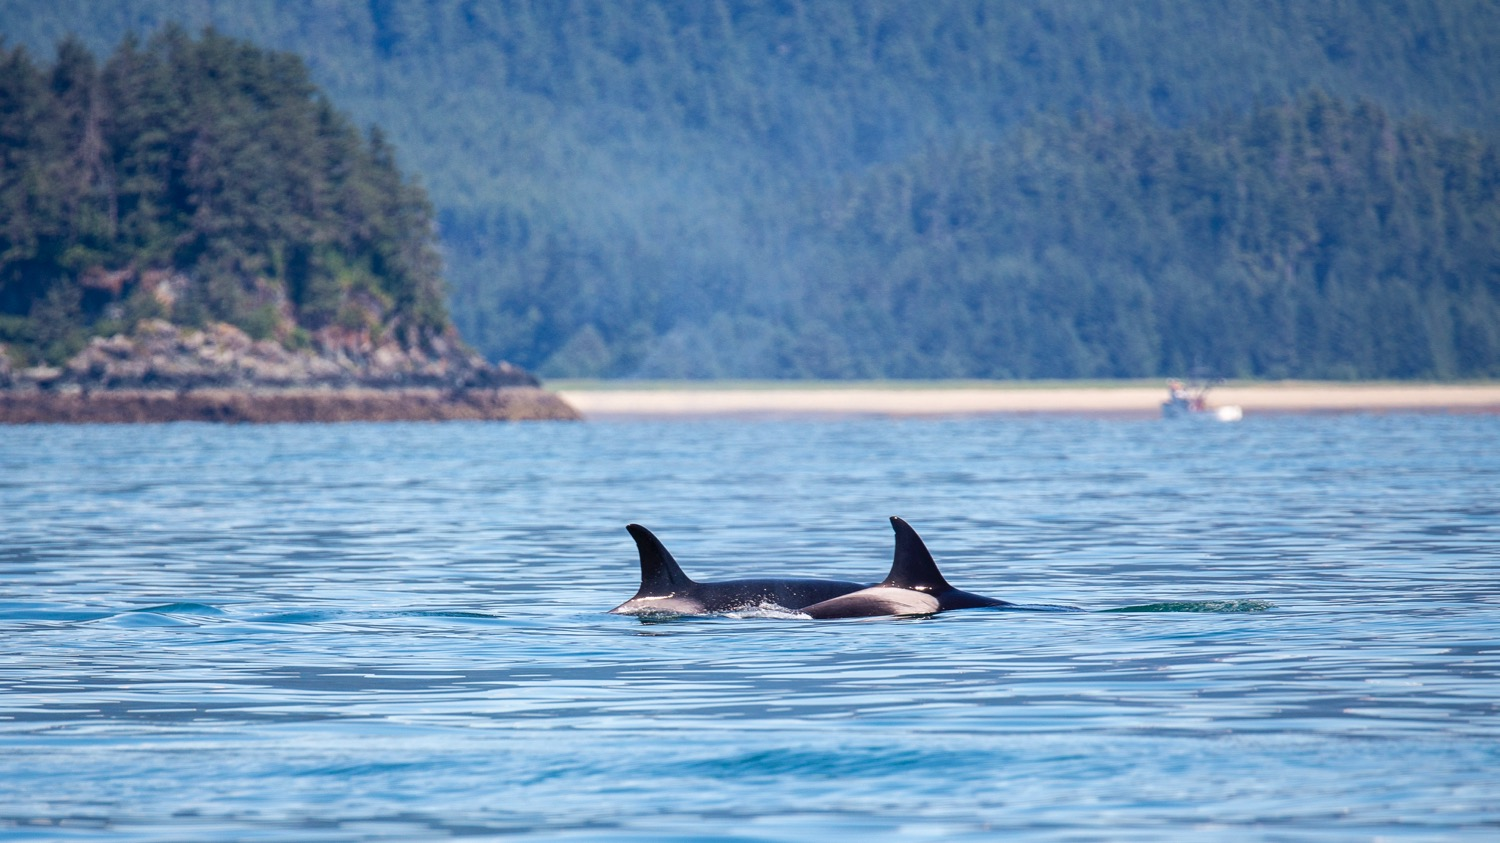 Orcas on the hunt.